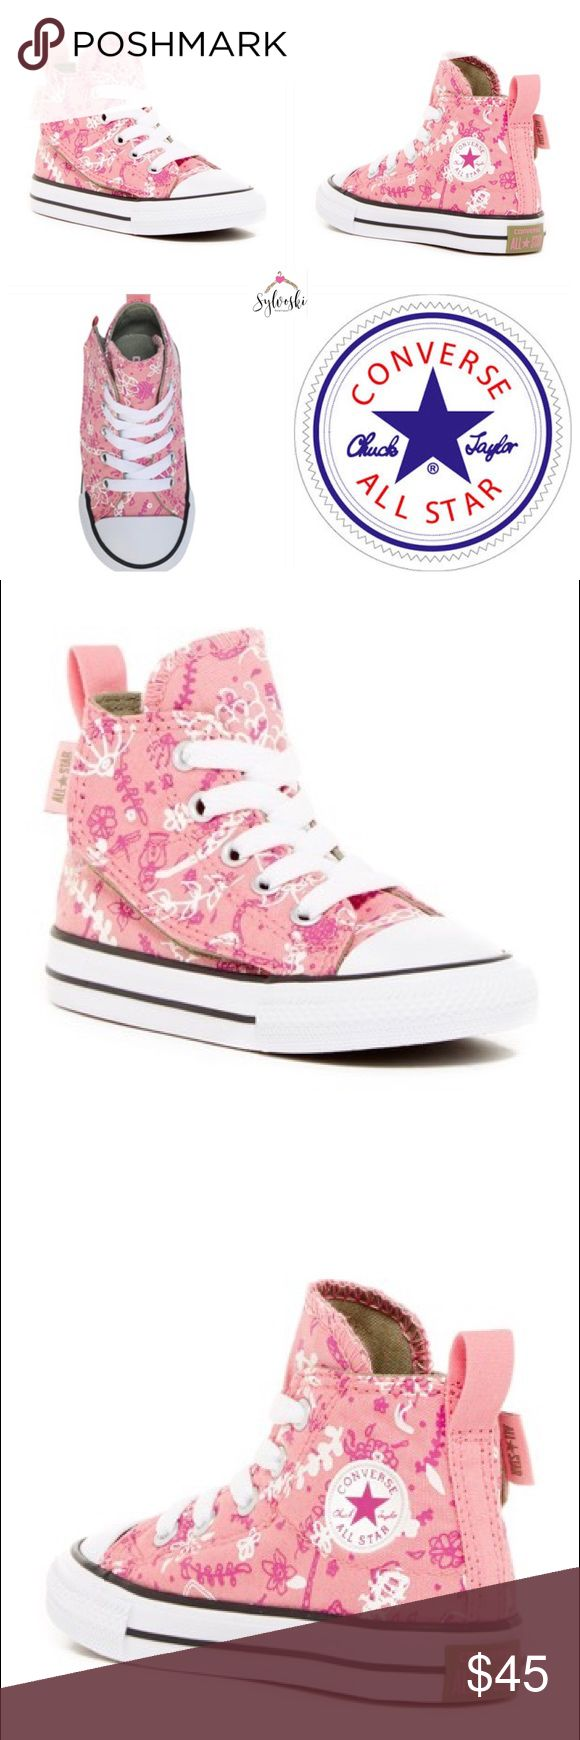 🆕 Converse Chuck Taylor  Simple Step Slip On Converse Chuck Taylor All Star Simple Step Slip On Sneaker Girls Pink/Print  Details  She'll be running around in these cute, graphic print Chuck Taylor All Stars!  Sizing: Runs large: order next size down.  - Round cap toe - Lace-up vamp - Converse brand logo - Hook-and-loop closure - Back pull-tab - Lightly padded footbed - Rubber bumper - Grip sole - Imported Materials Textile upper, textile and rubber sole  No Box Converse Shoes Sneakers